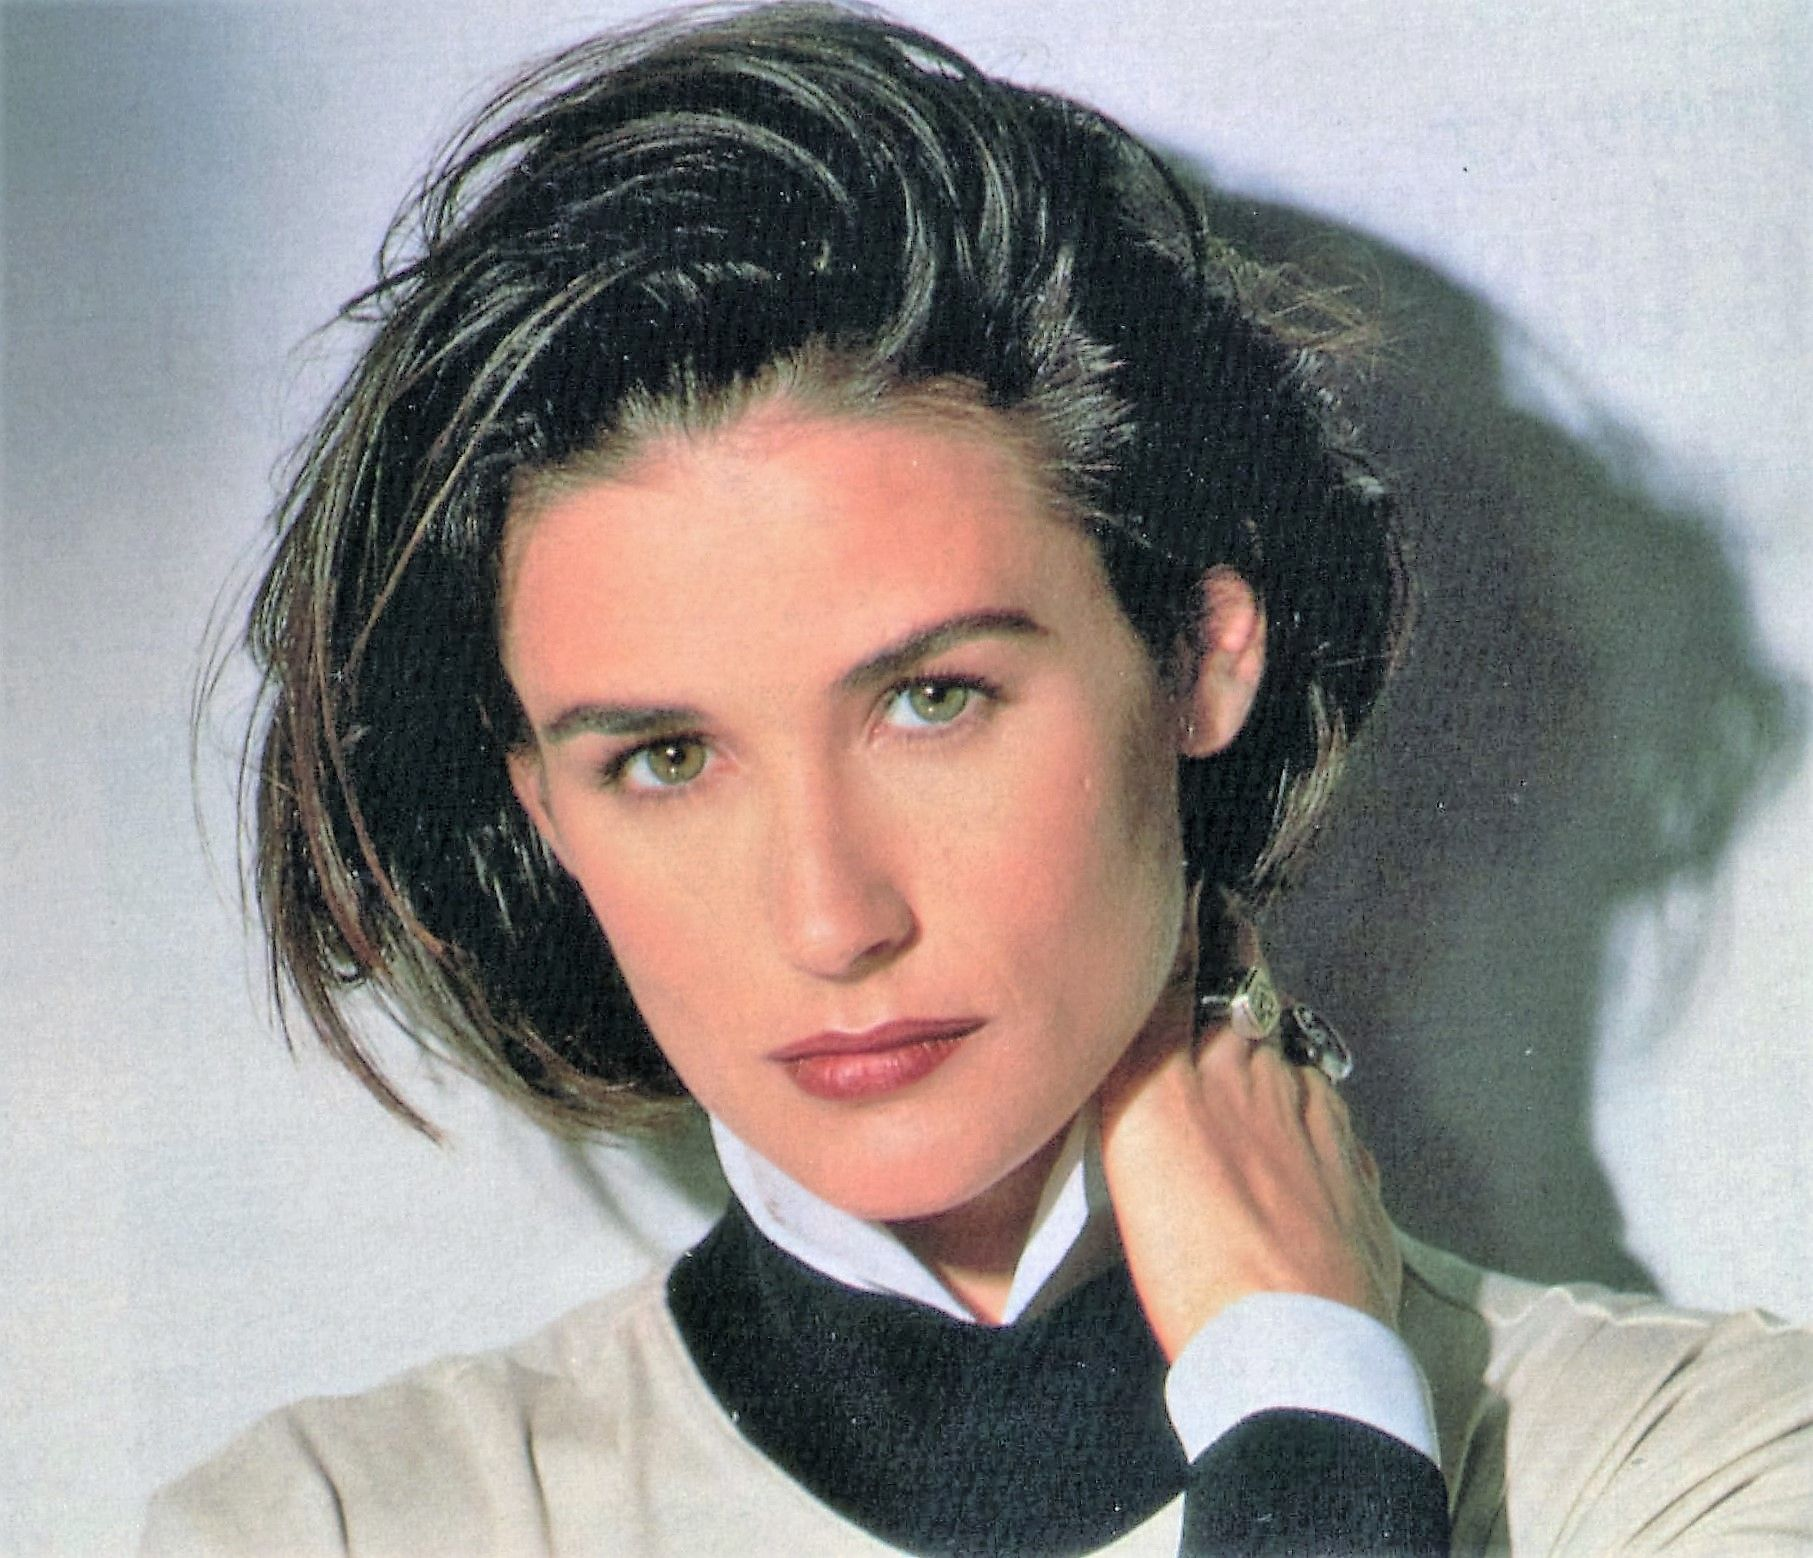 25 Pictures of Young Demi Moore | Demi moore, Demi, Demi more